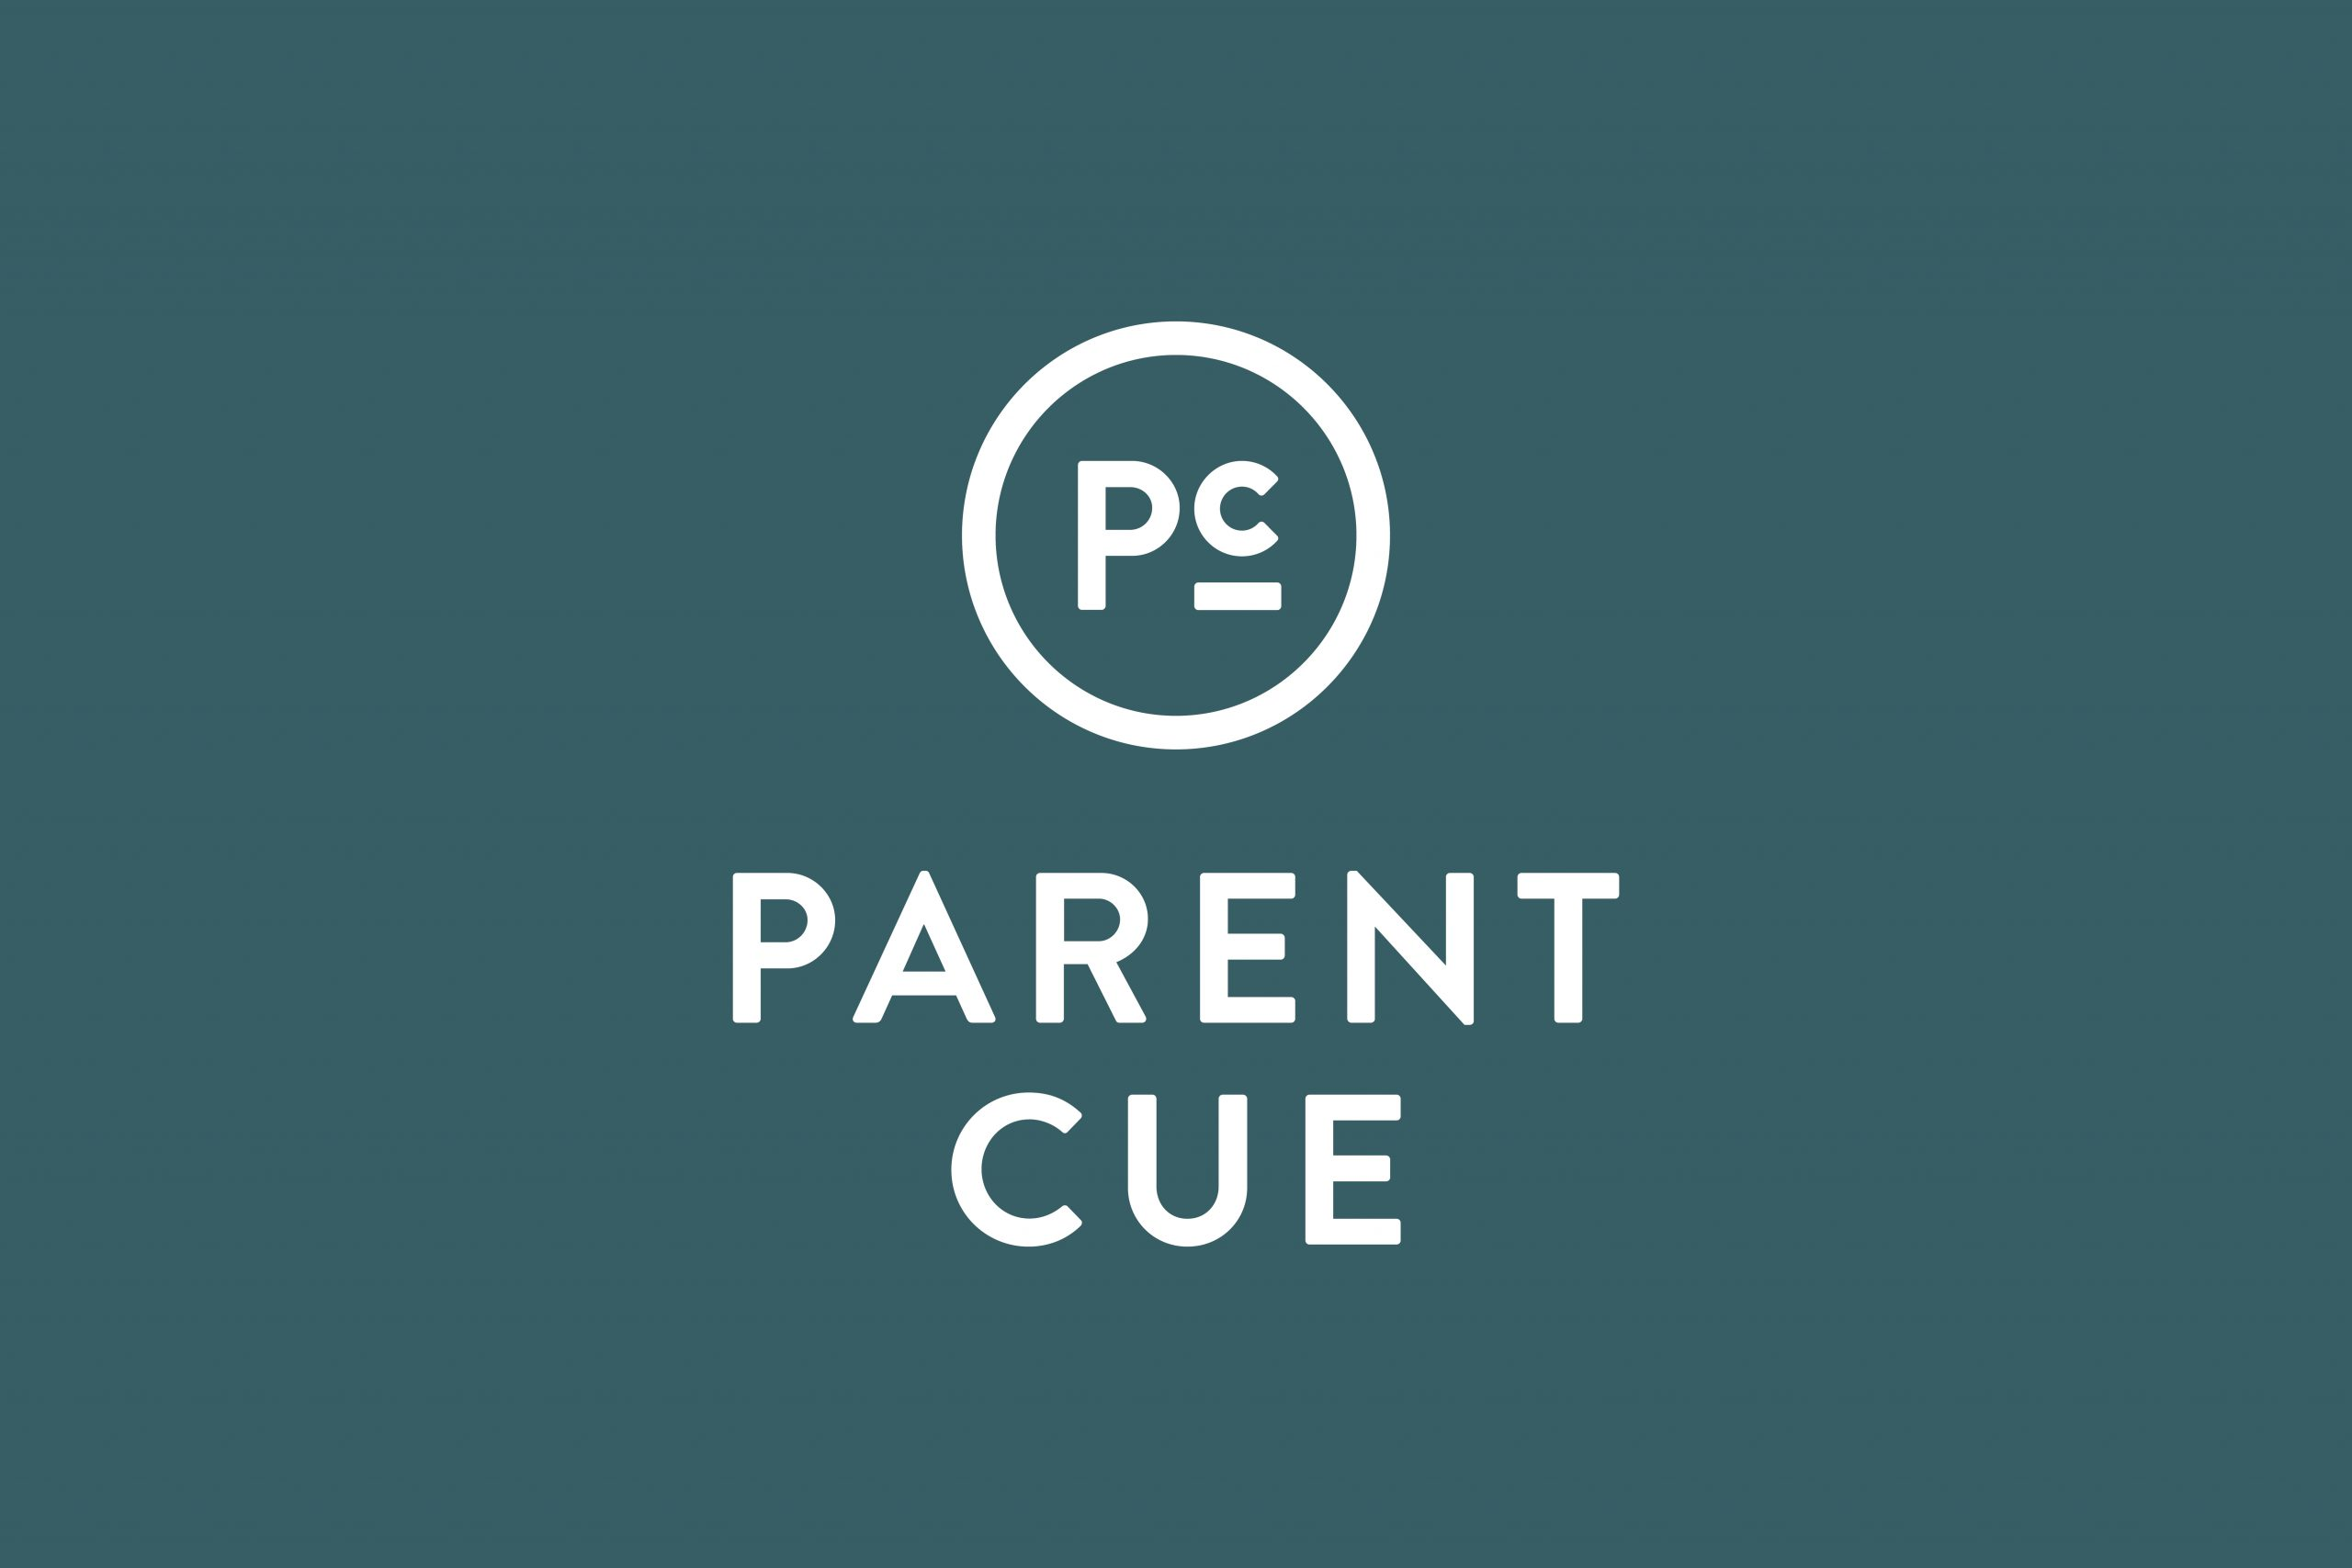 Is PC Christian | Parent Cue Blog